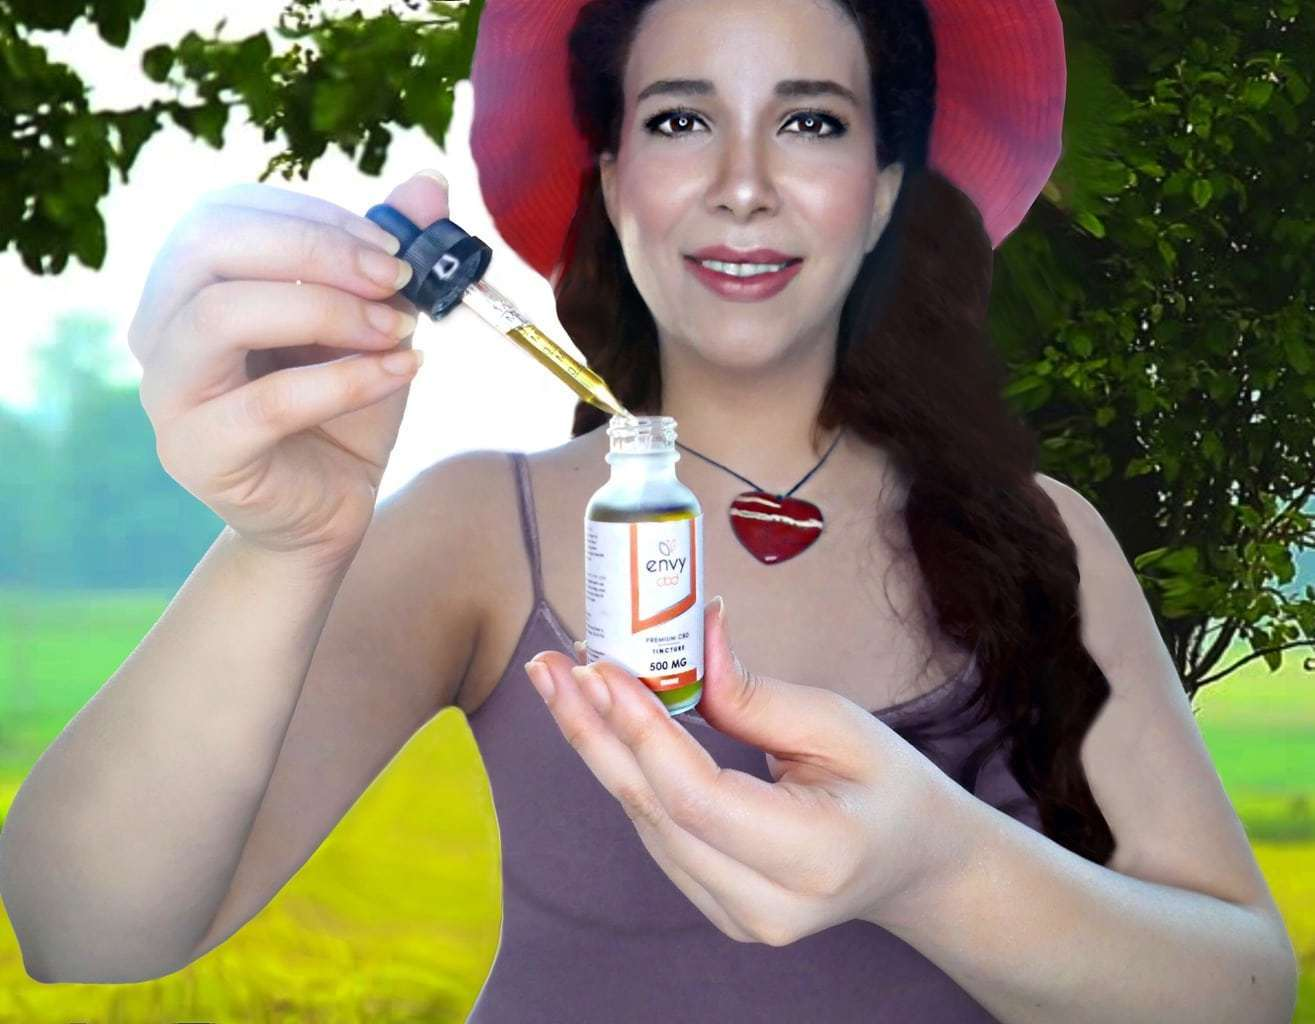 @maddyreviews's cover photo for 'Envy CBD Oral Tincture Varieties and Potent Review'